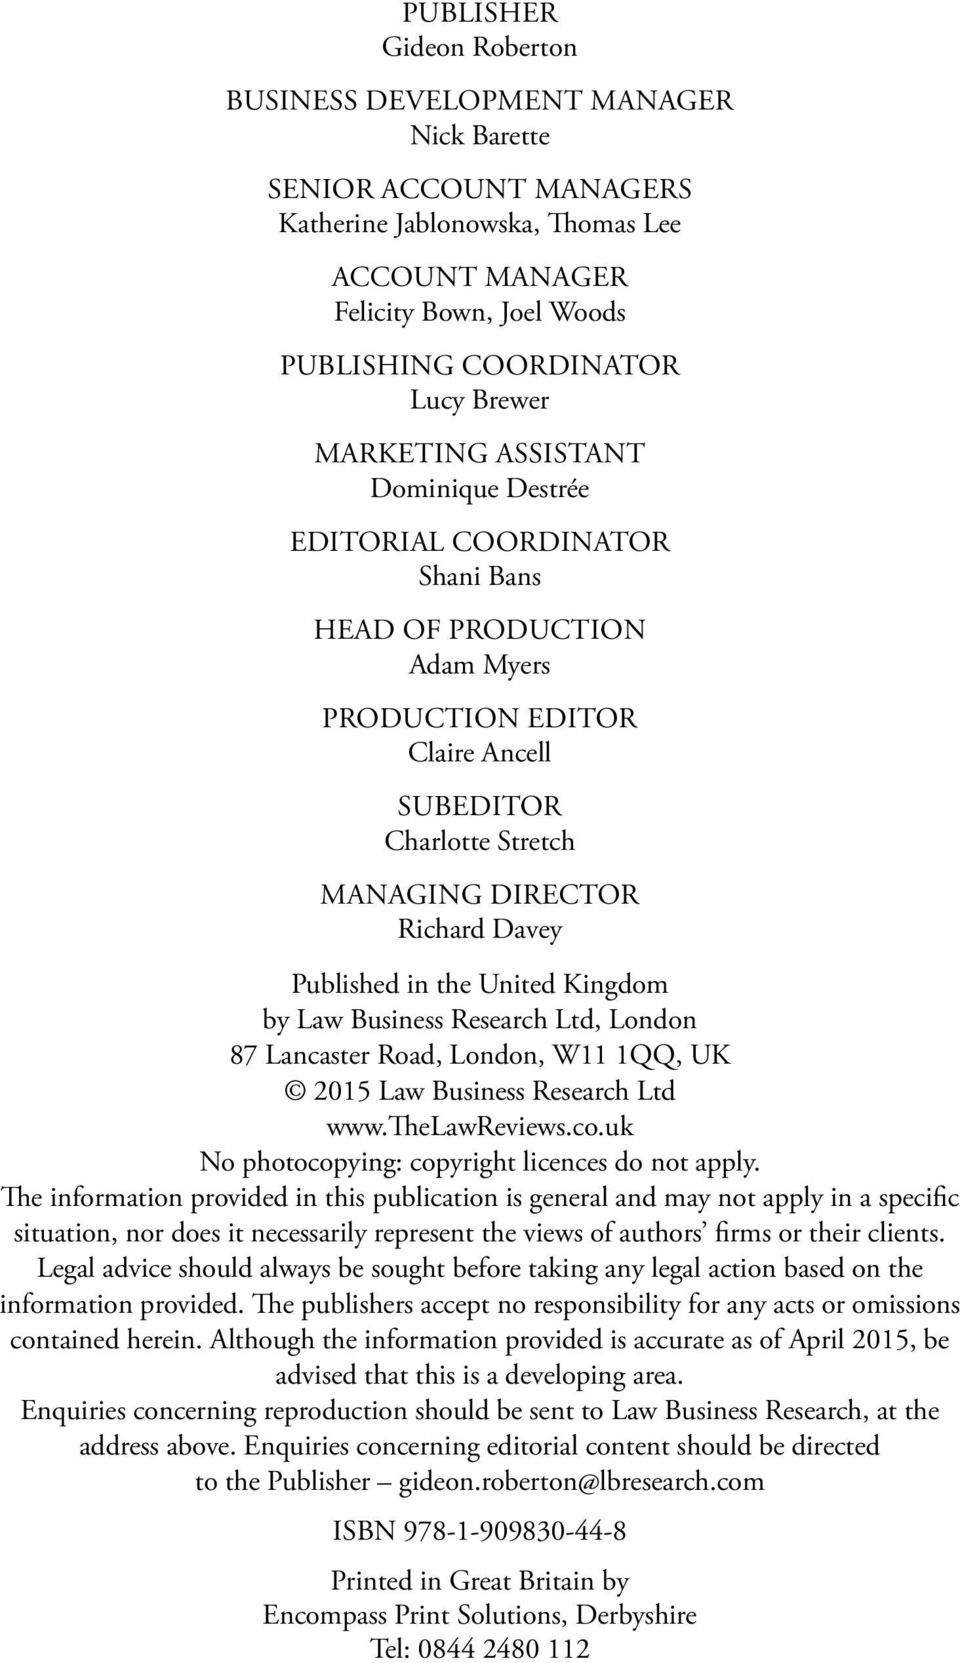 Published in the United Kingdom by Law Business Research Ltd, London 87 Lancaster Road, London, W11 1QQ, UK 2015 Law Business Research Ltd www.thelawreviews.co.